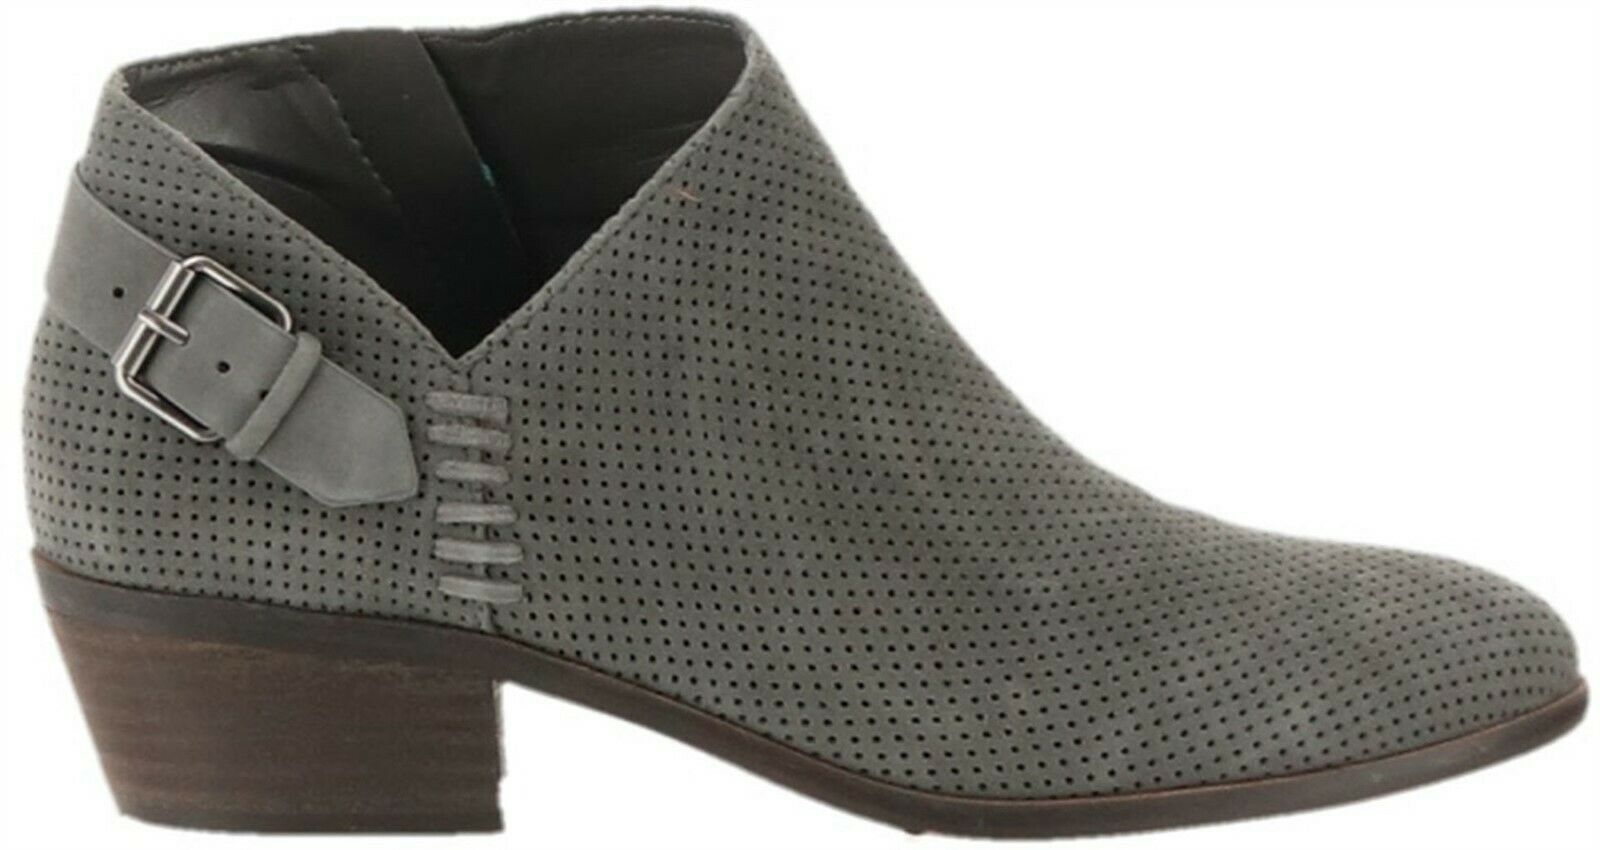 Vince Camuto Suede Booties Buckle Parveen Greystone 5.5M NEW A311049